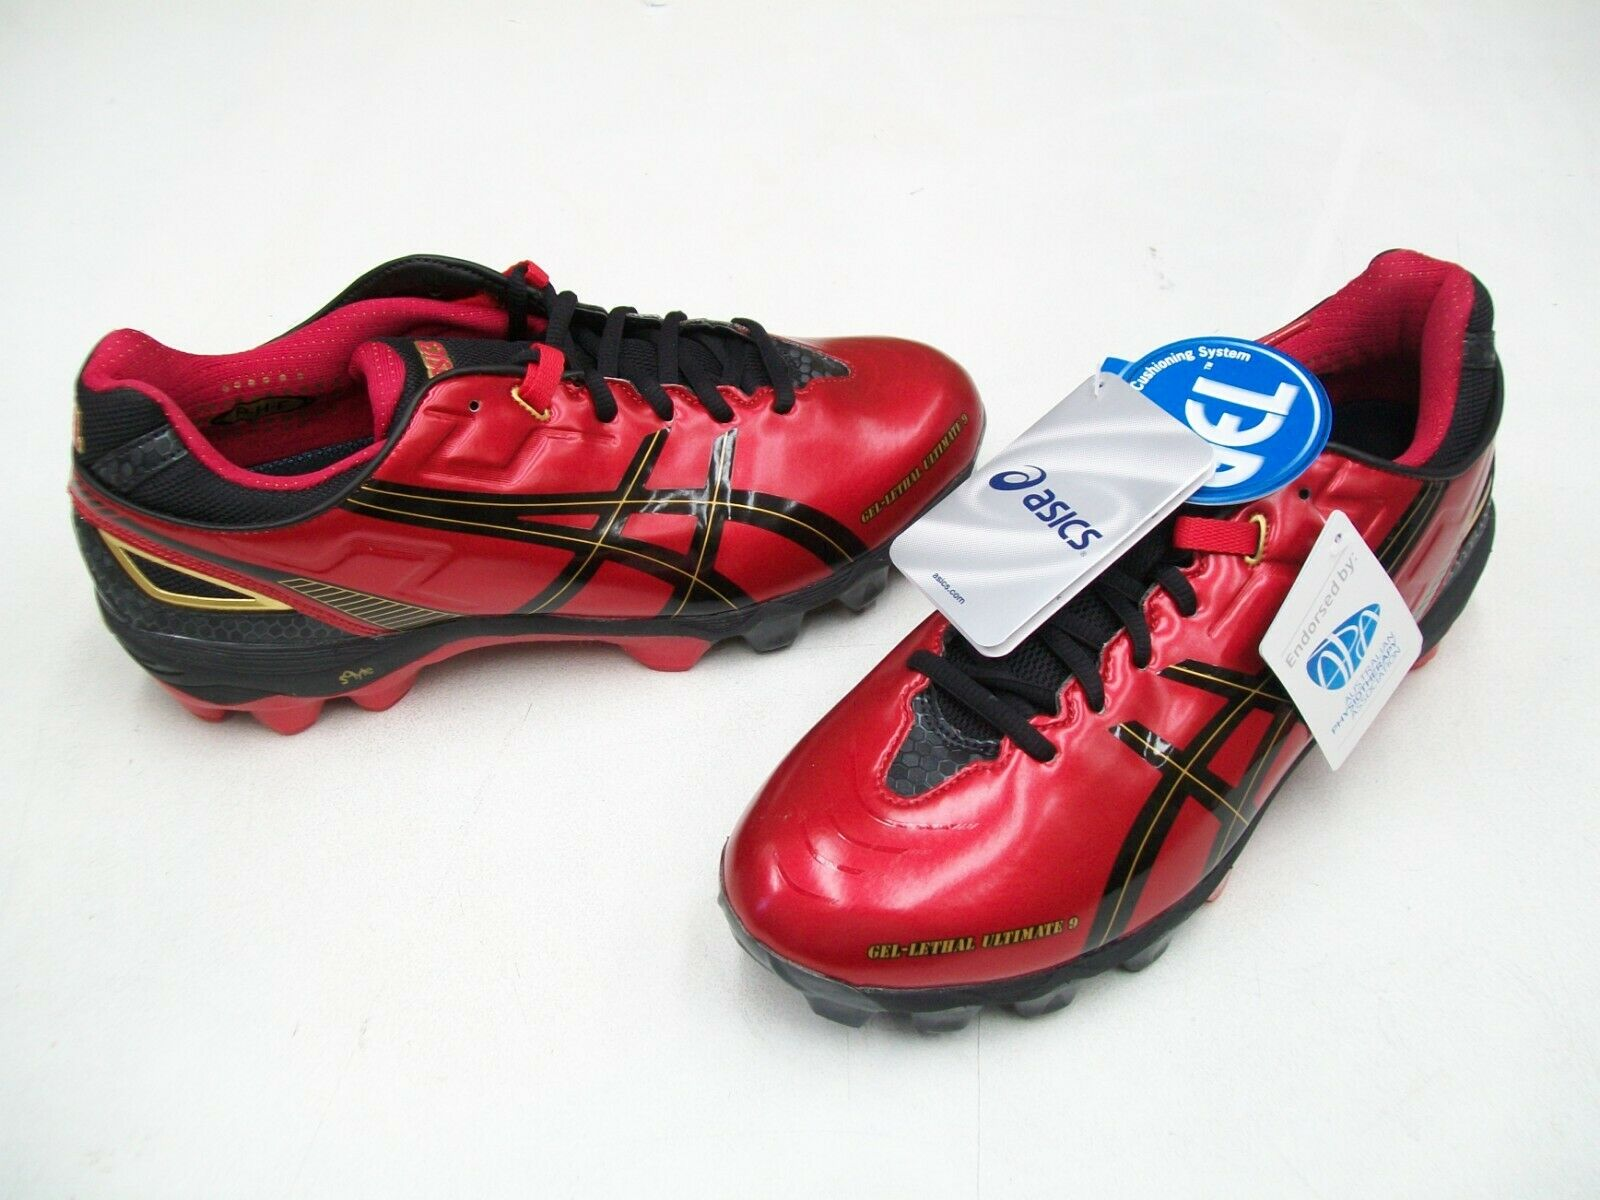 ASICS GEL LETHAL ULTIMATE IGS 9  MENS FOOTBALL SOCCER BOOTS SHOES US 9.5